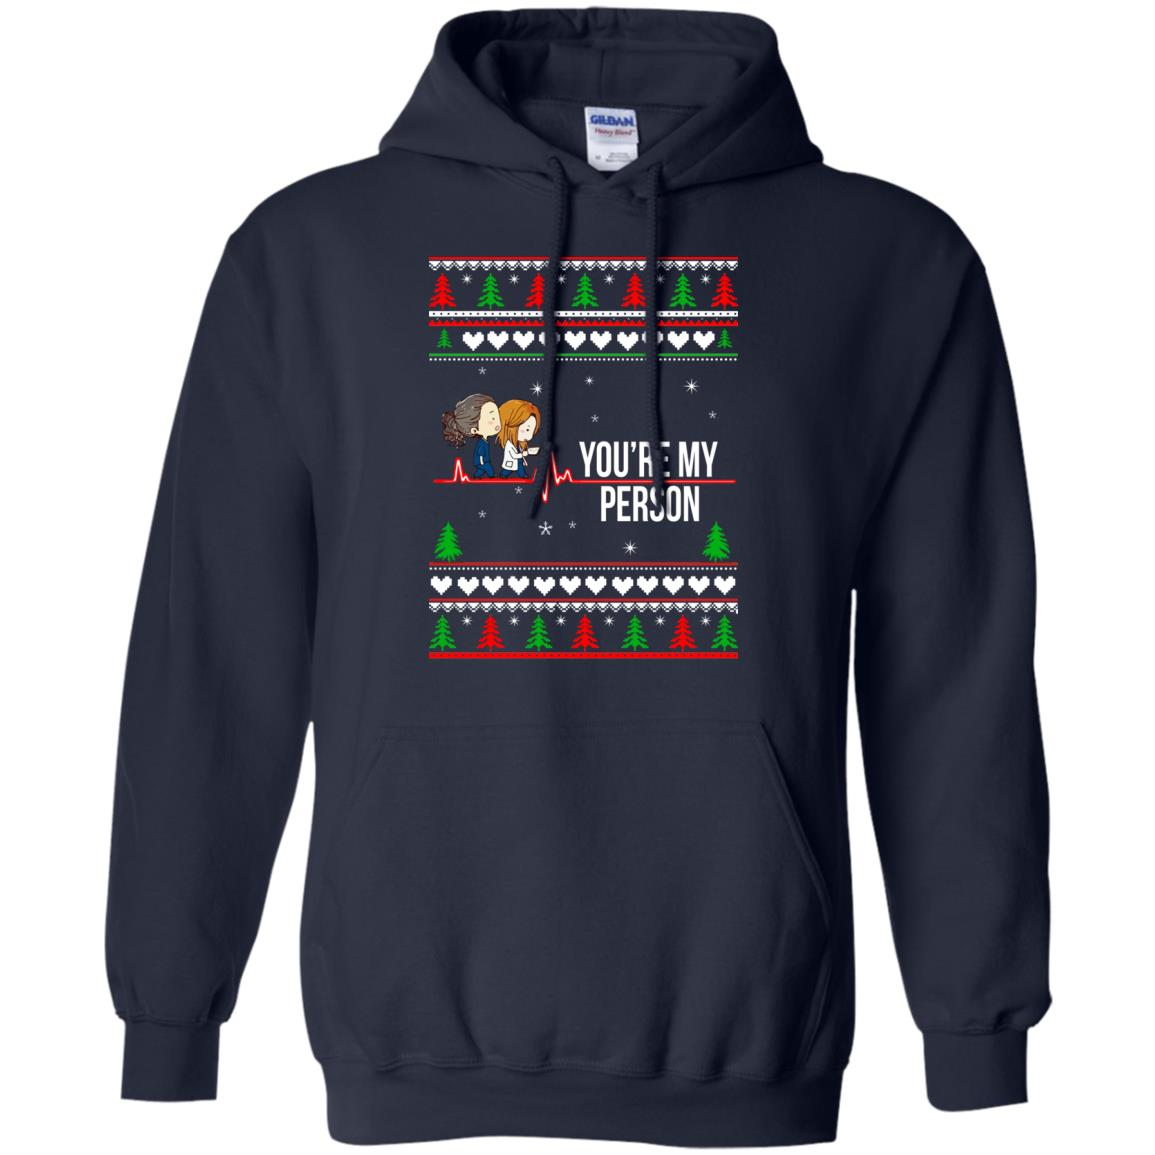 grey 39 s anatomy you are my person christmas sweater. Black Bedroom Furniture Sets. Home Design Ideas